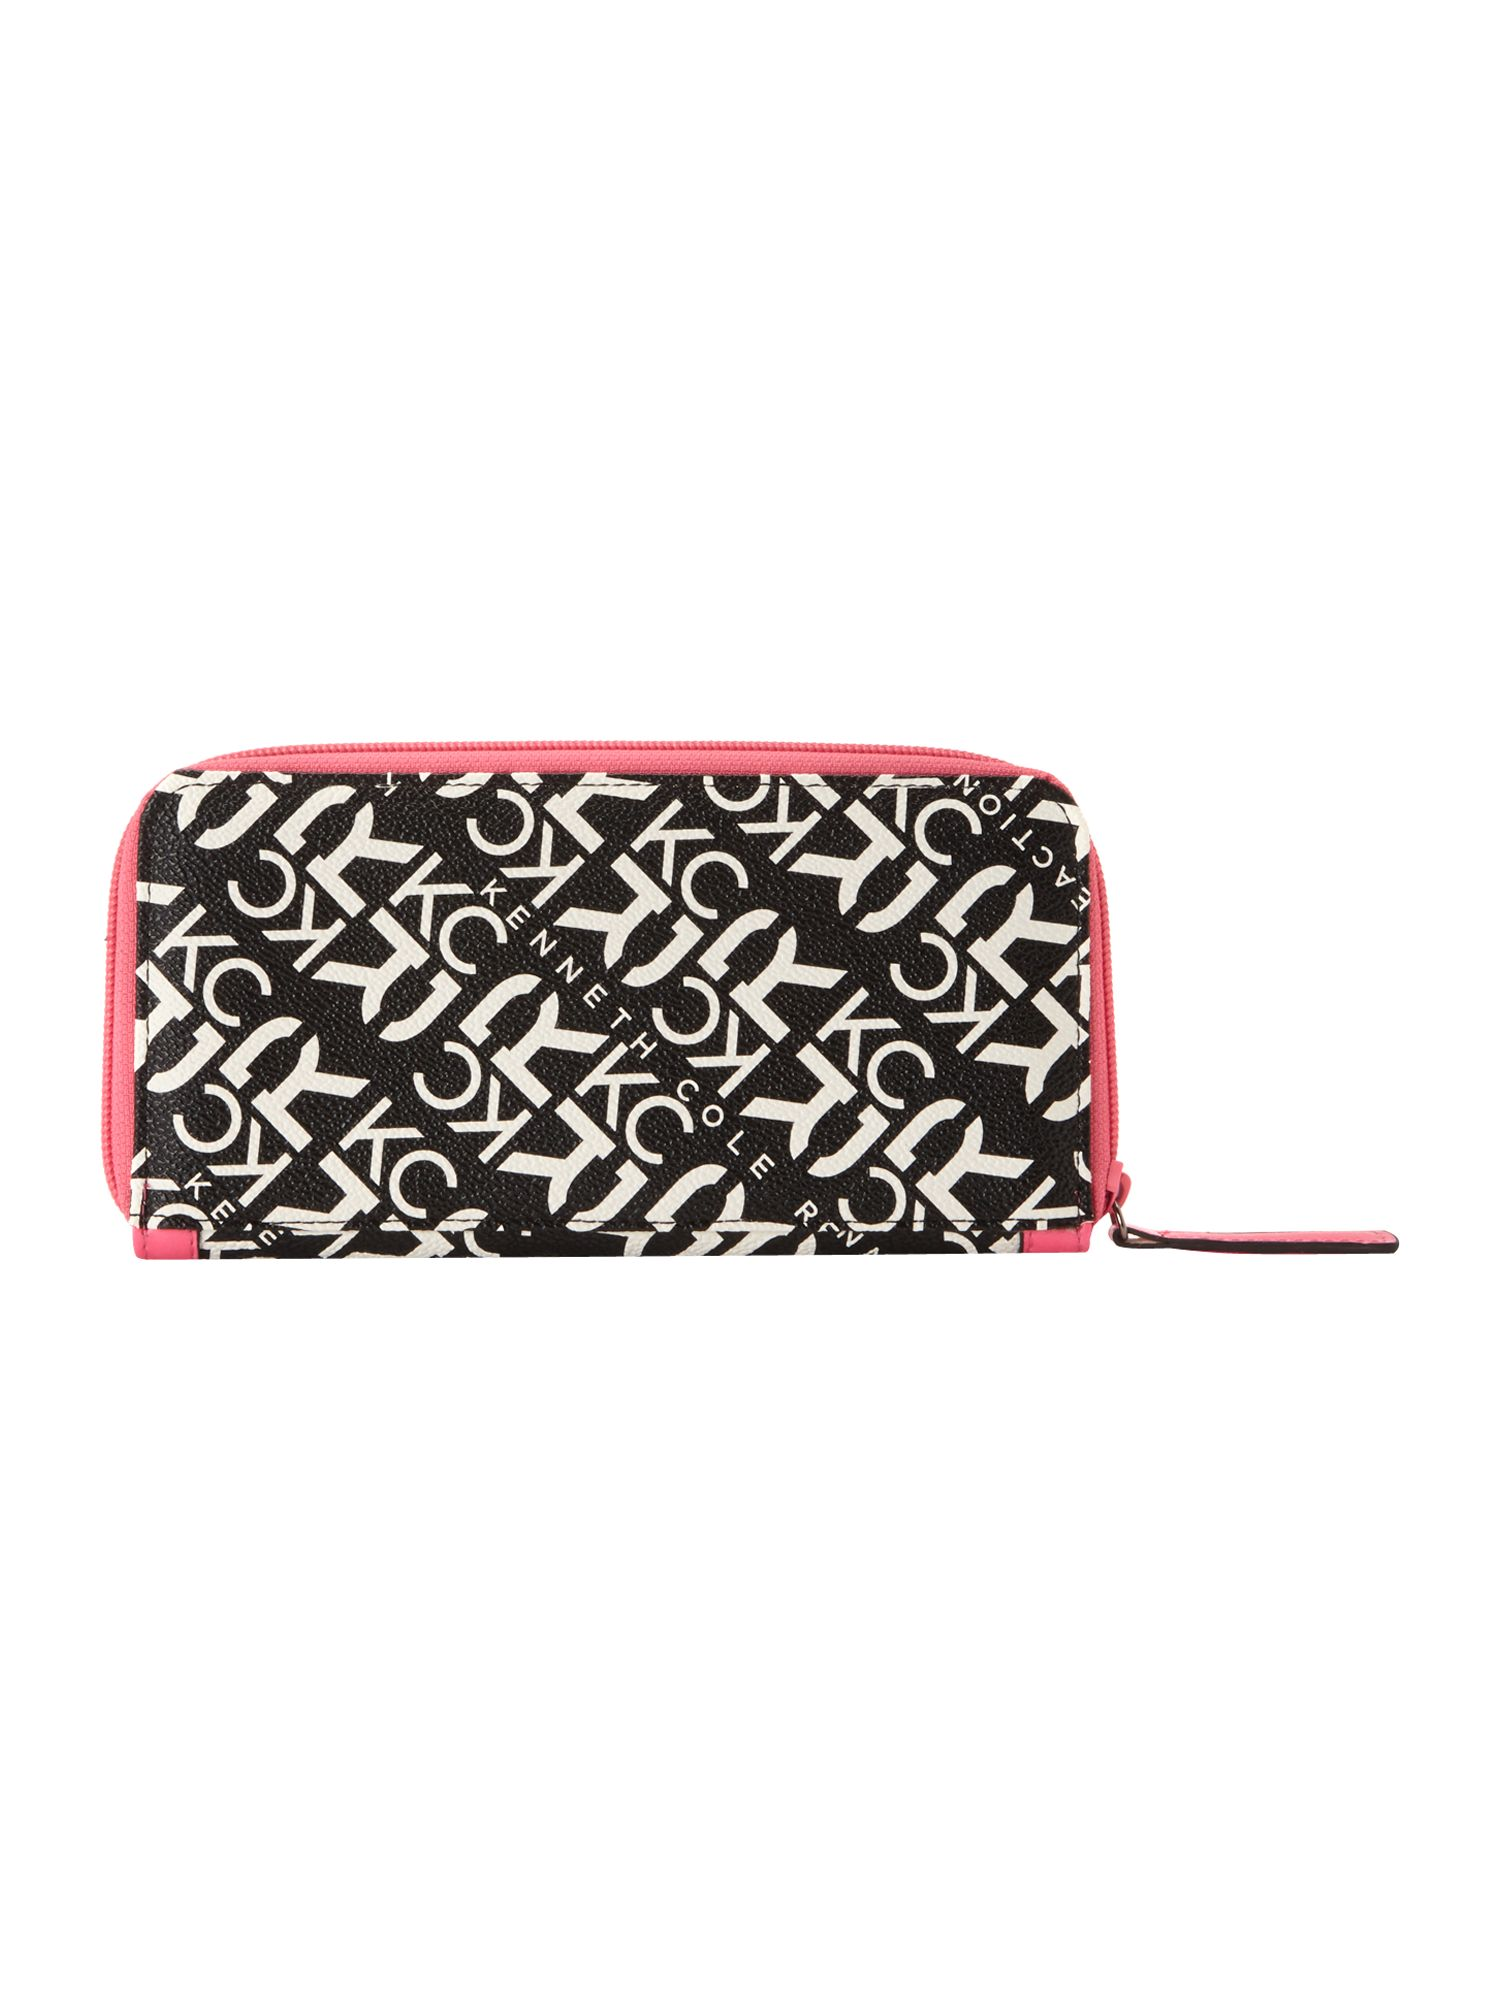 Essex street logo ziparound purse